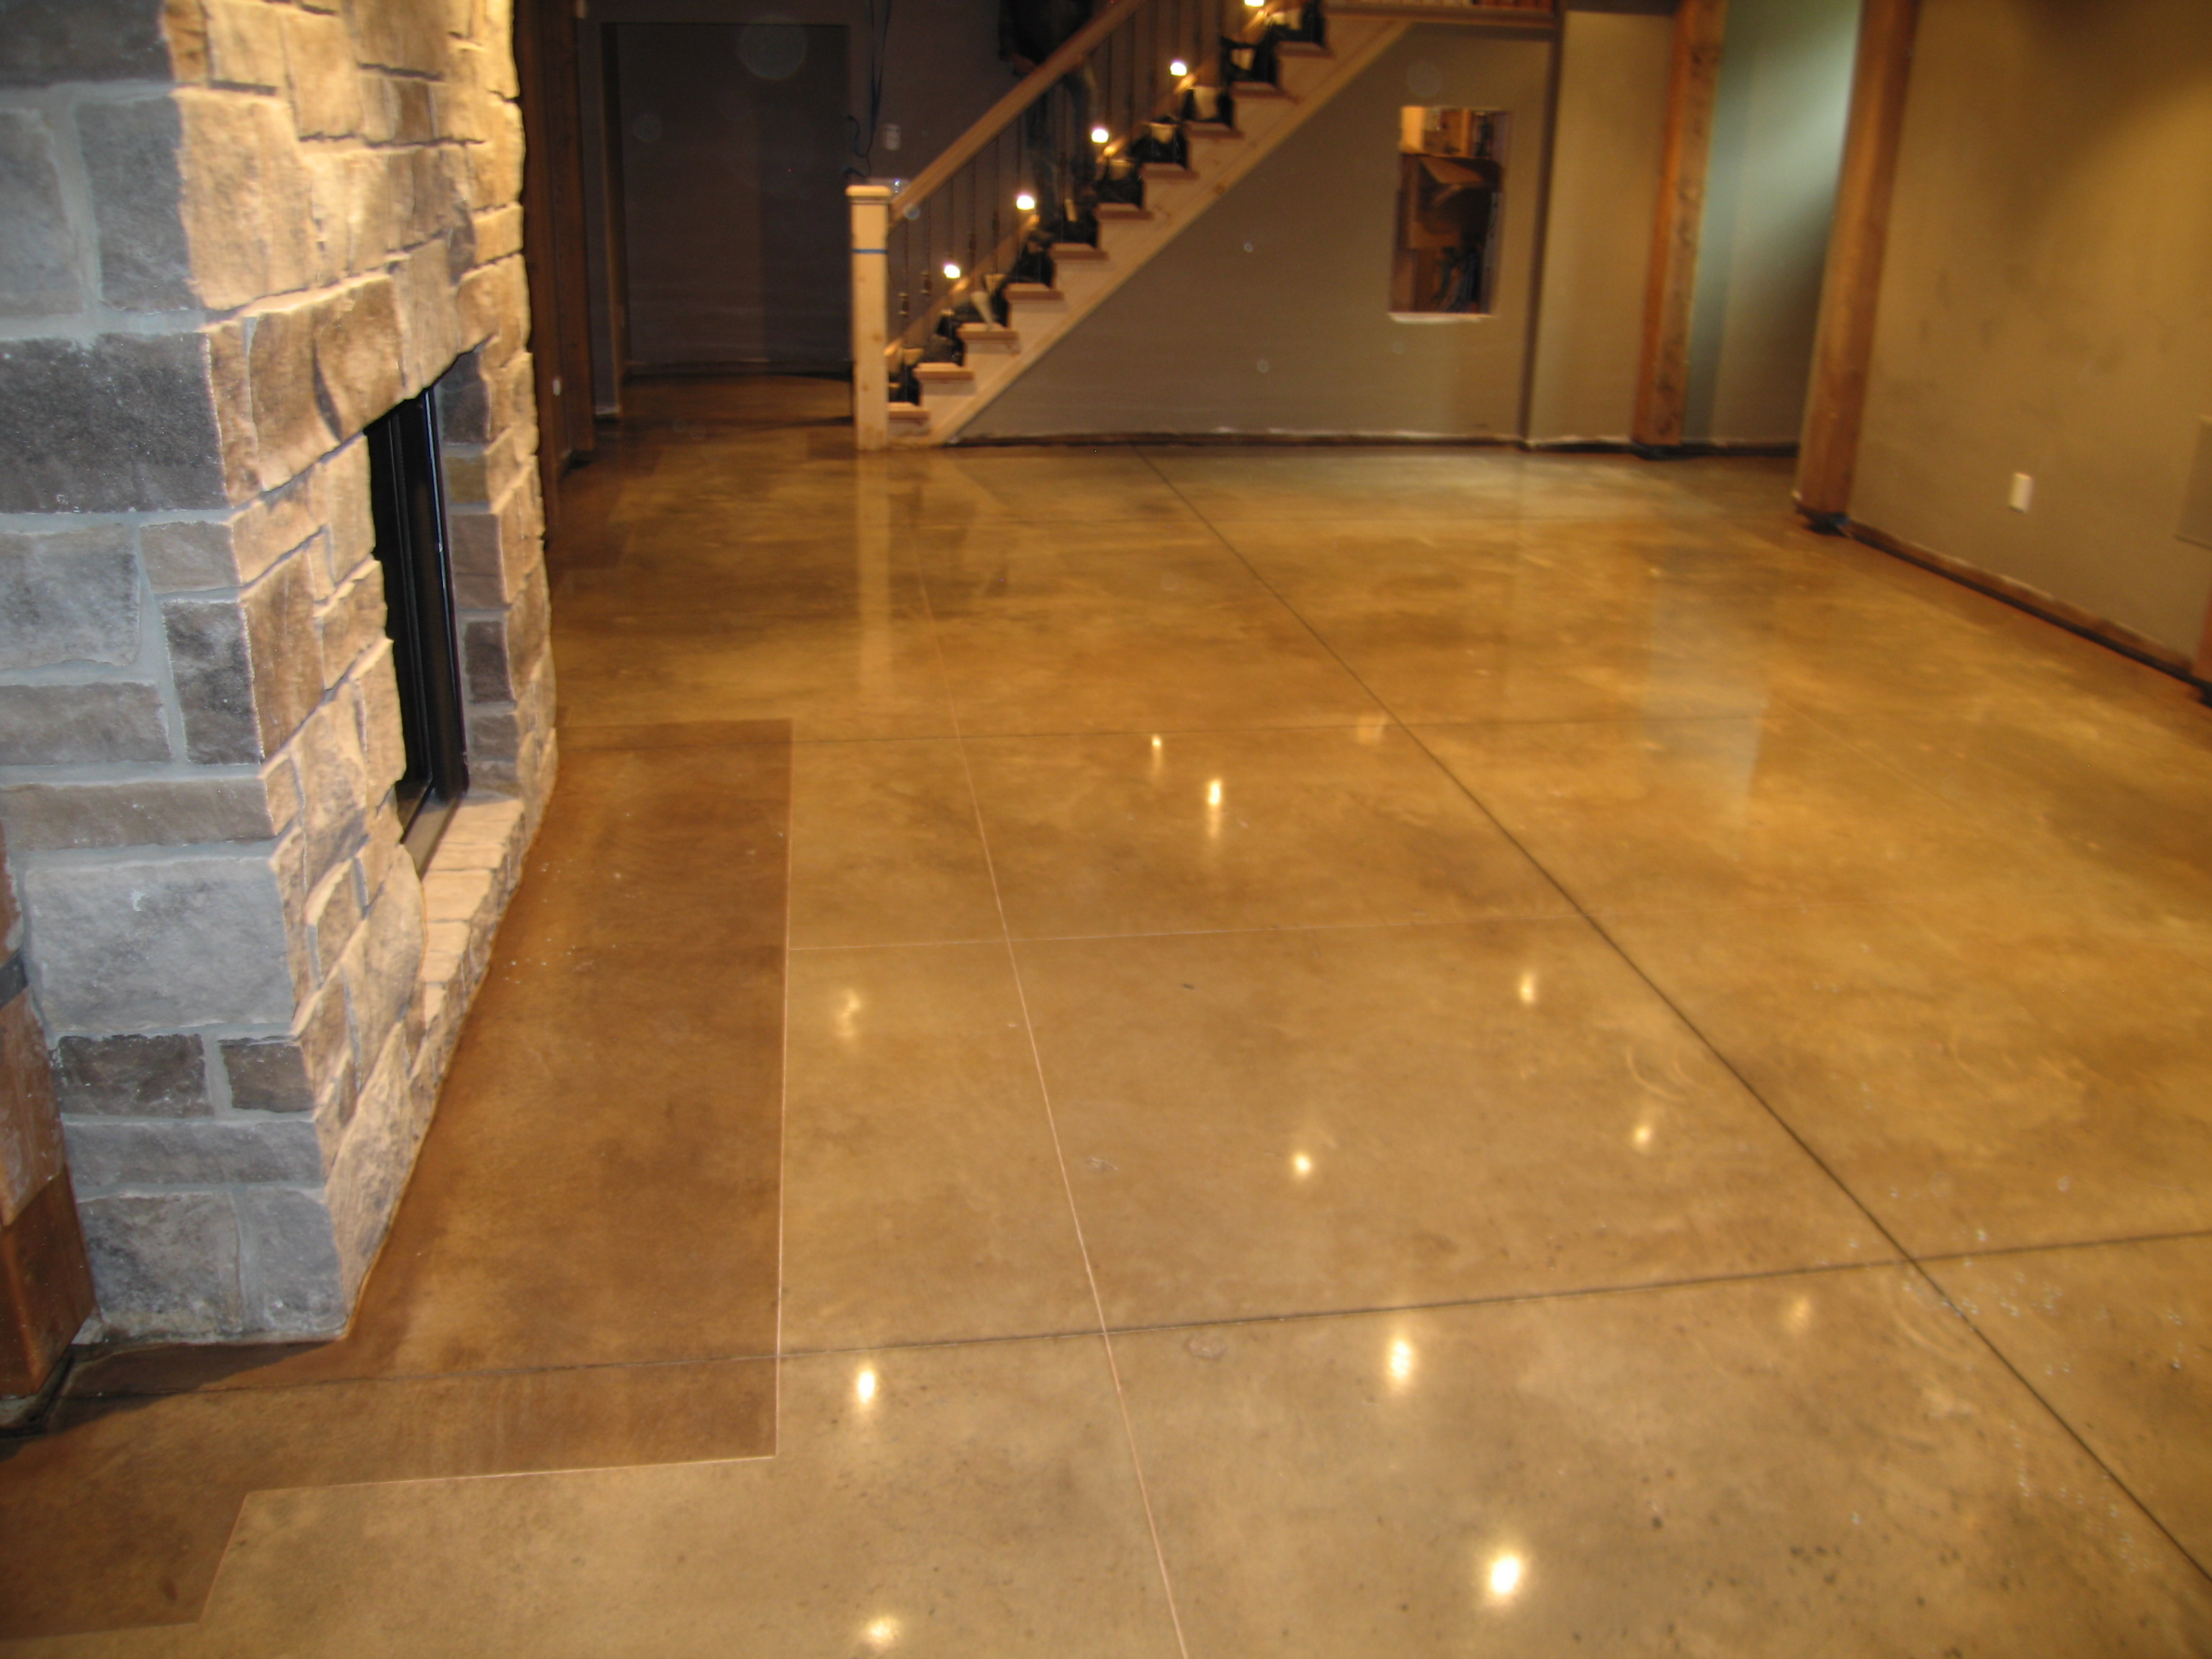 Residential Polished Concrete With Dark Border